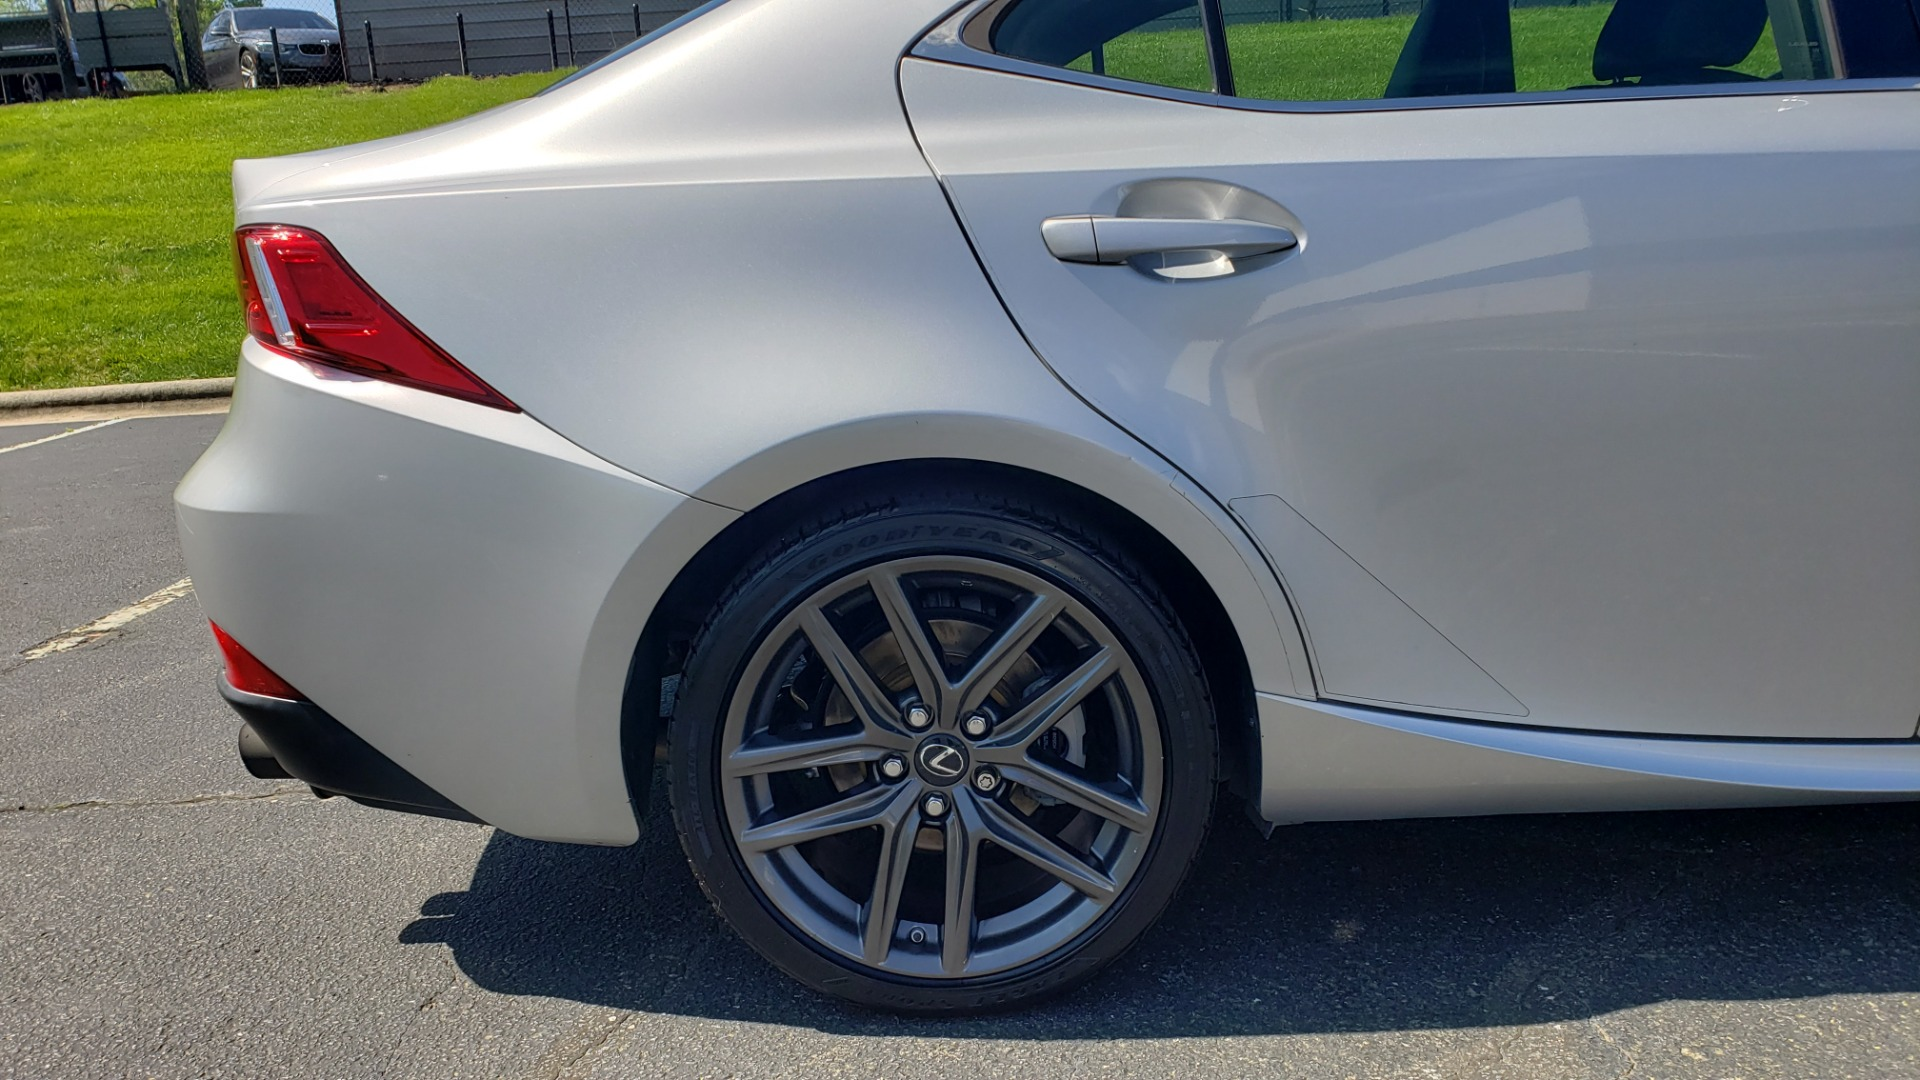 Used 2015 Lexus IS 250 F-SPORT / BSM / SUNROOF / VENT SEATS / REARVIEW for sale Sold at Formula Imports in Charlotte NC 28227 11